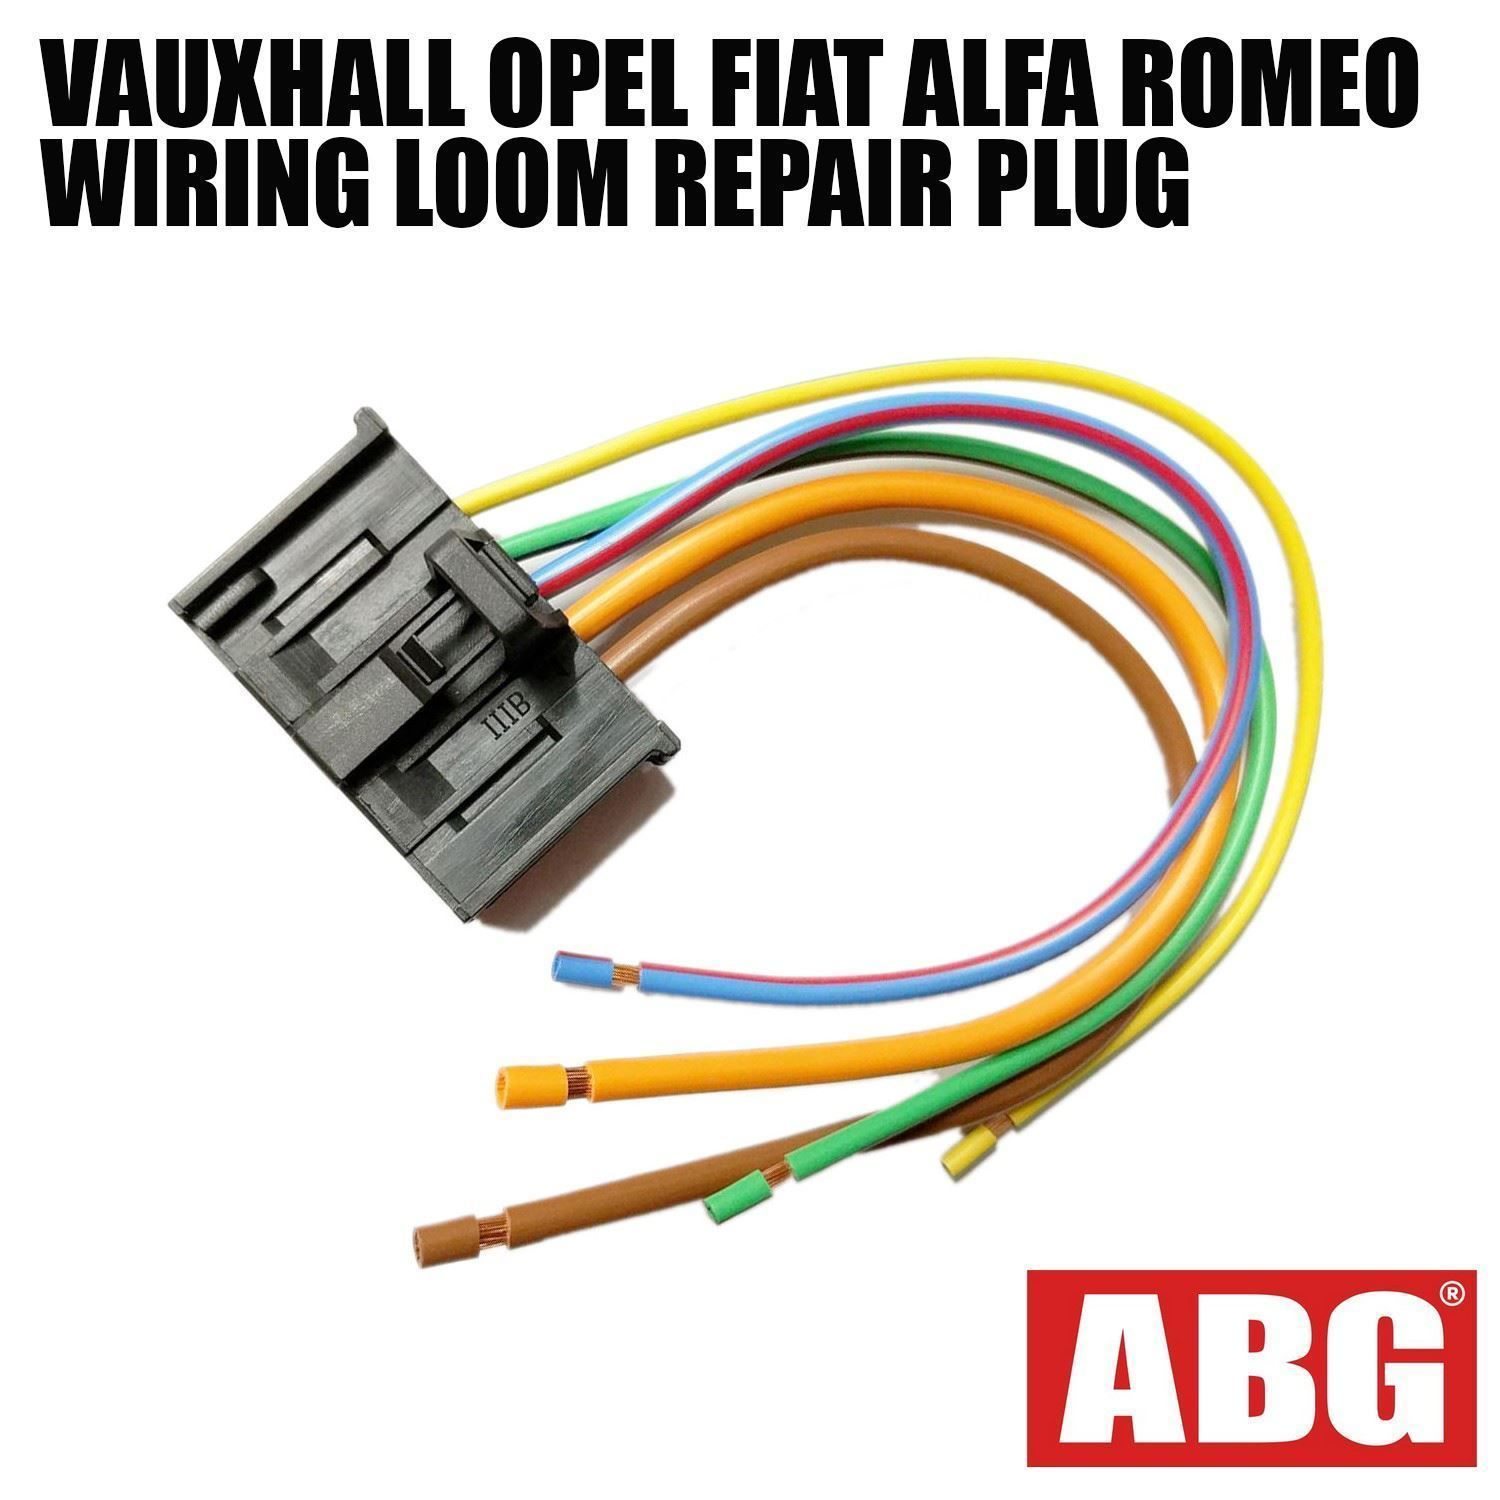 Vauxhall Corsa Wiring Loom Just Another Diagram Blog Opel Pdf For Fiat Grande Punto D Heater Resister Rh In Pinterest Com Sale